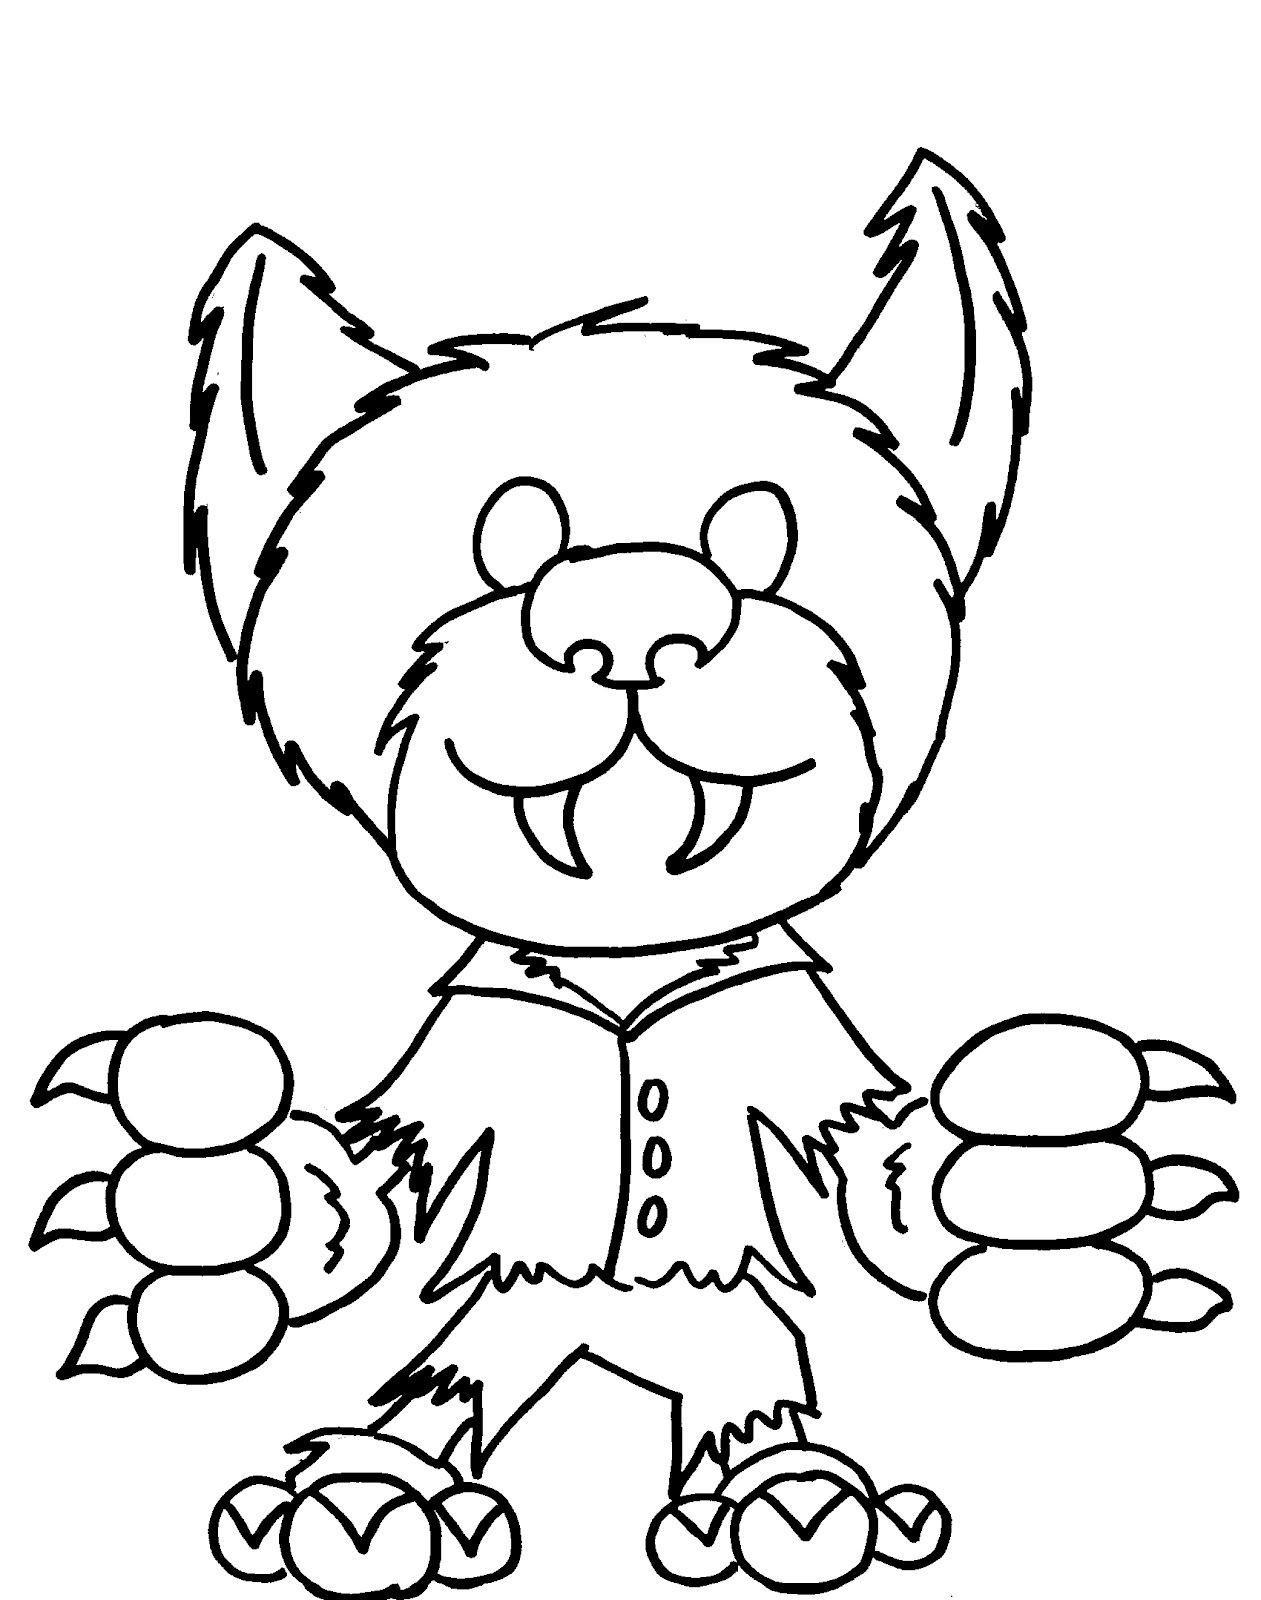 Cute Werewolf Coloring - Play Free Coloring Game Online